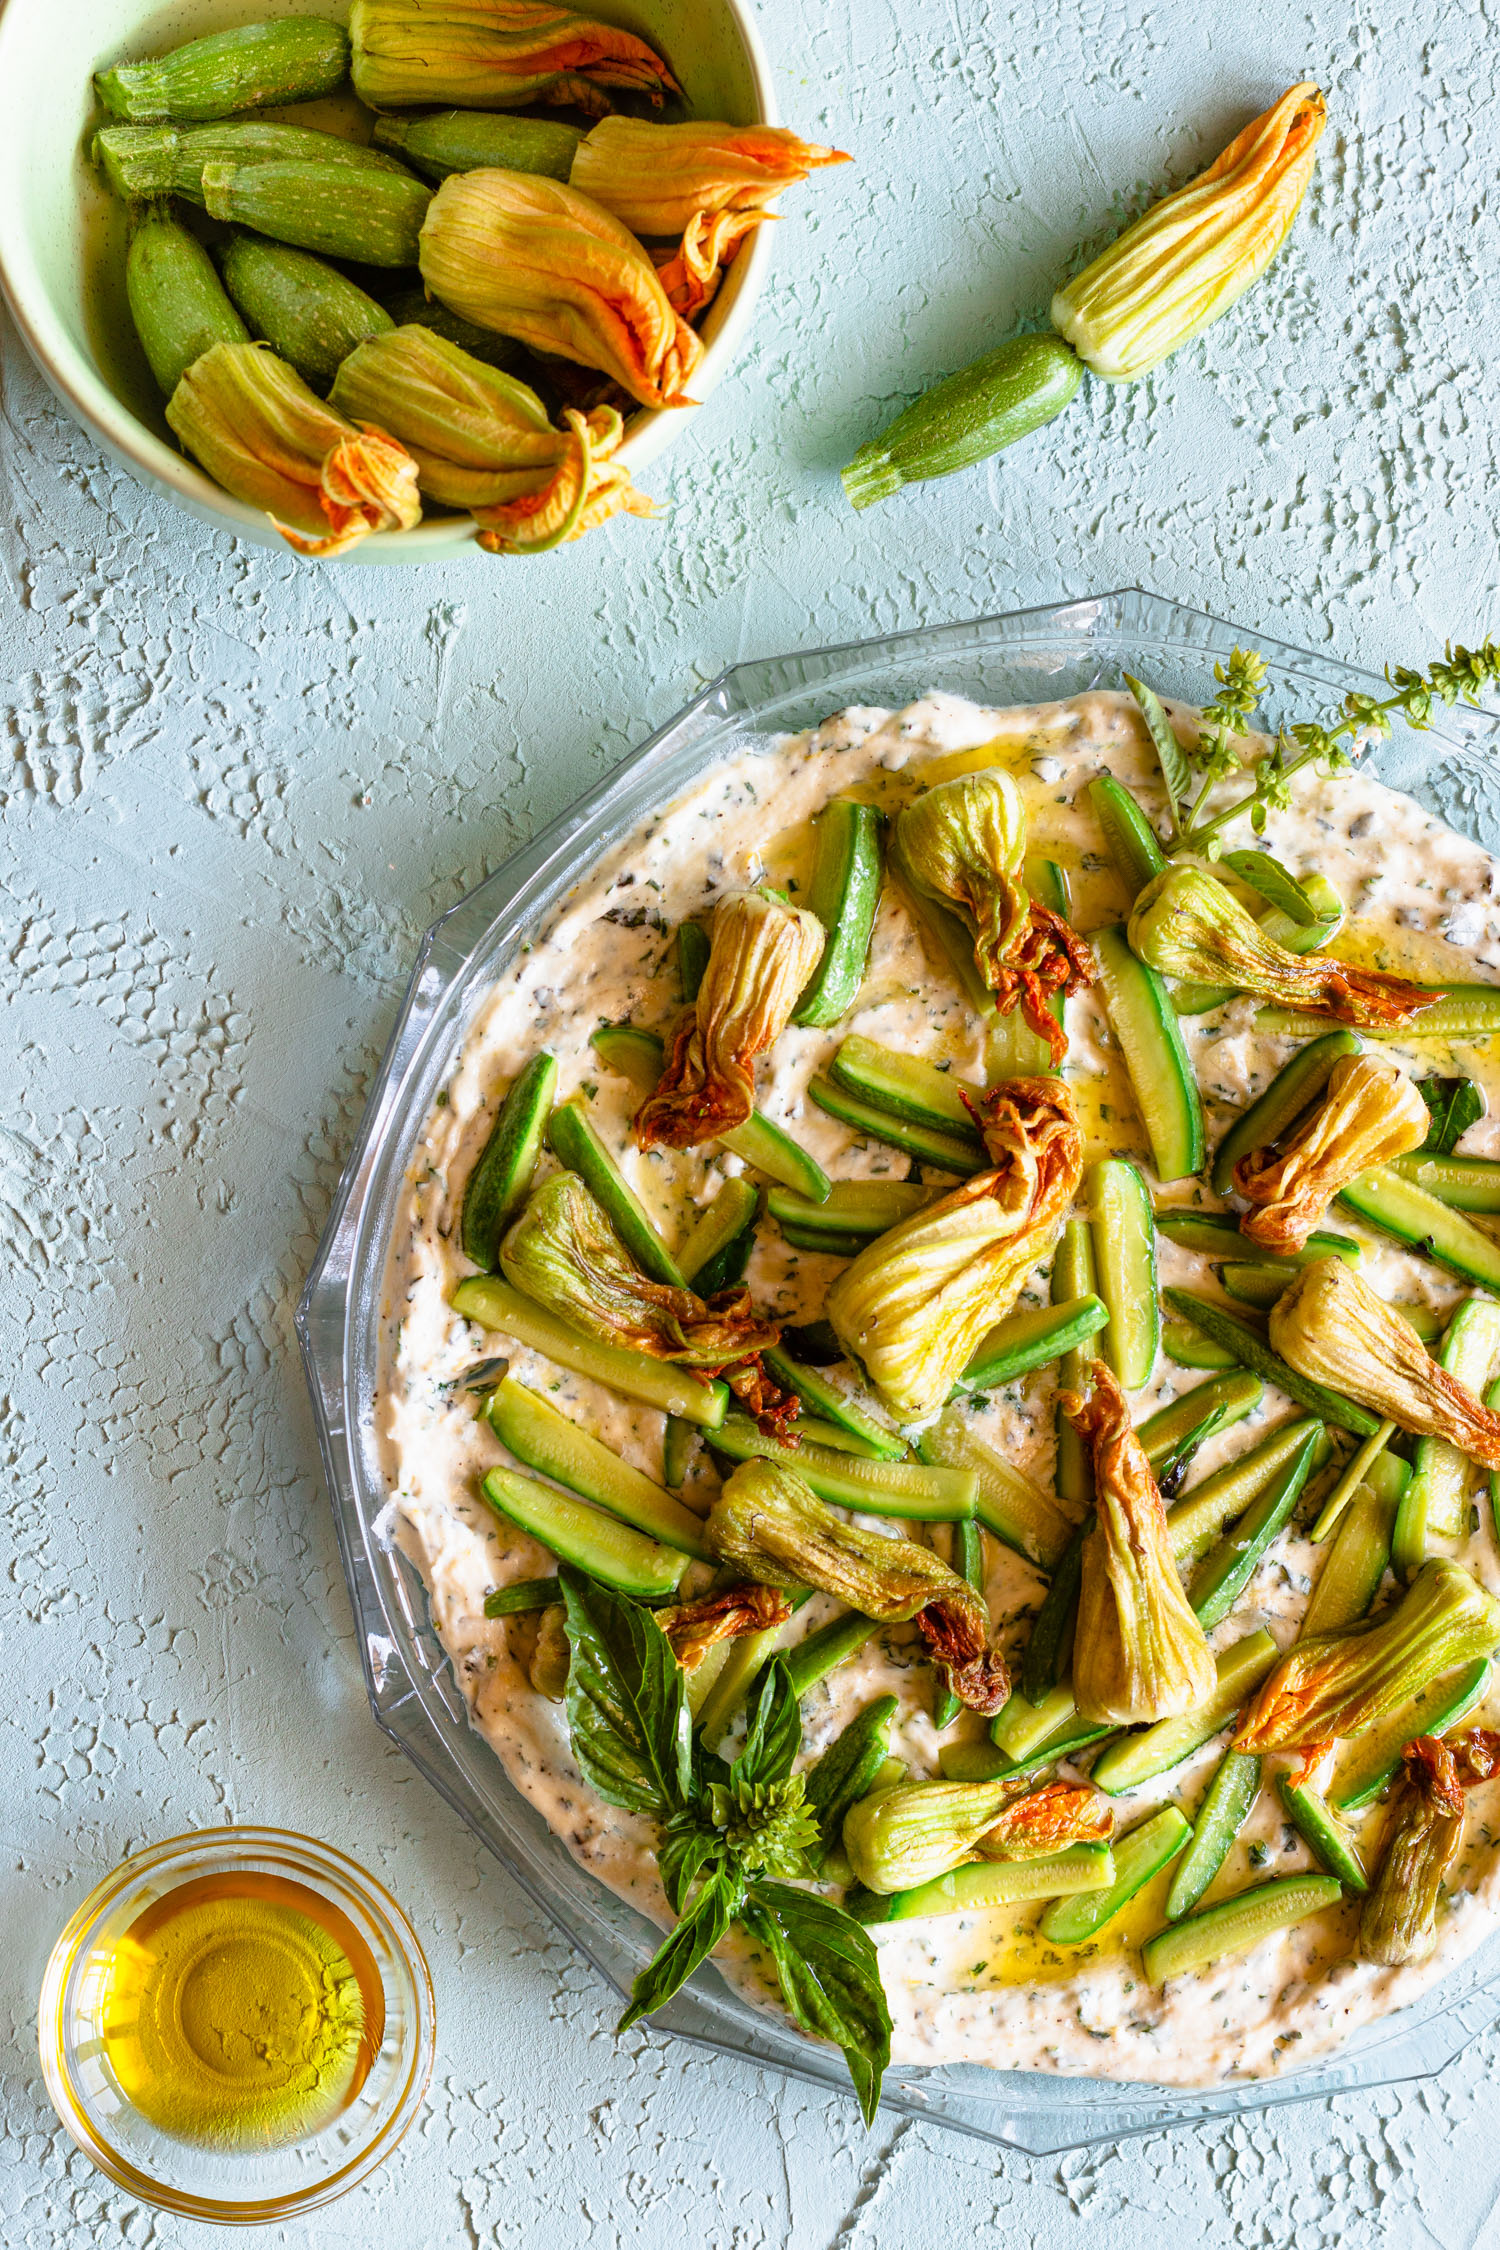 Overhead shot of sautéed zucchini blossoms and herbed ricotta on a serving platter next to a bowl filled with zucchini blossoms and a smaller bowl filled with olive oil.